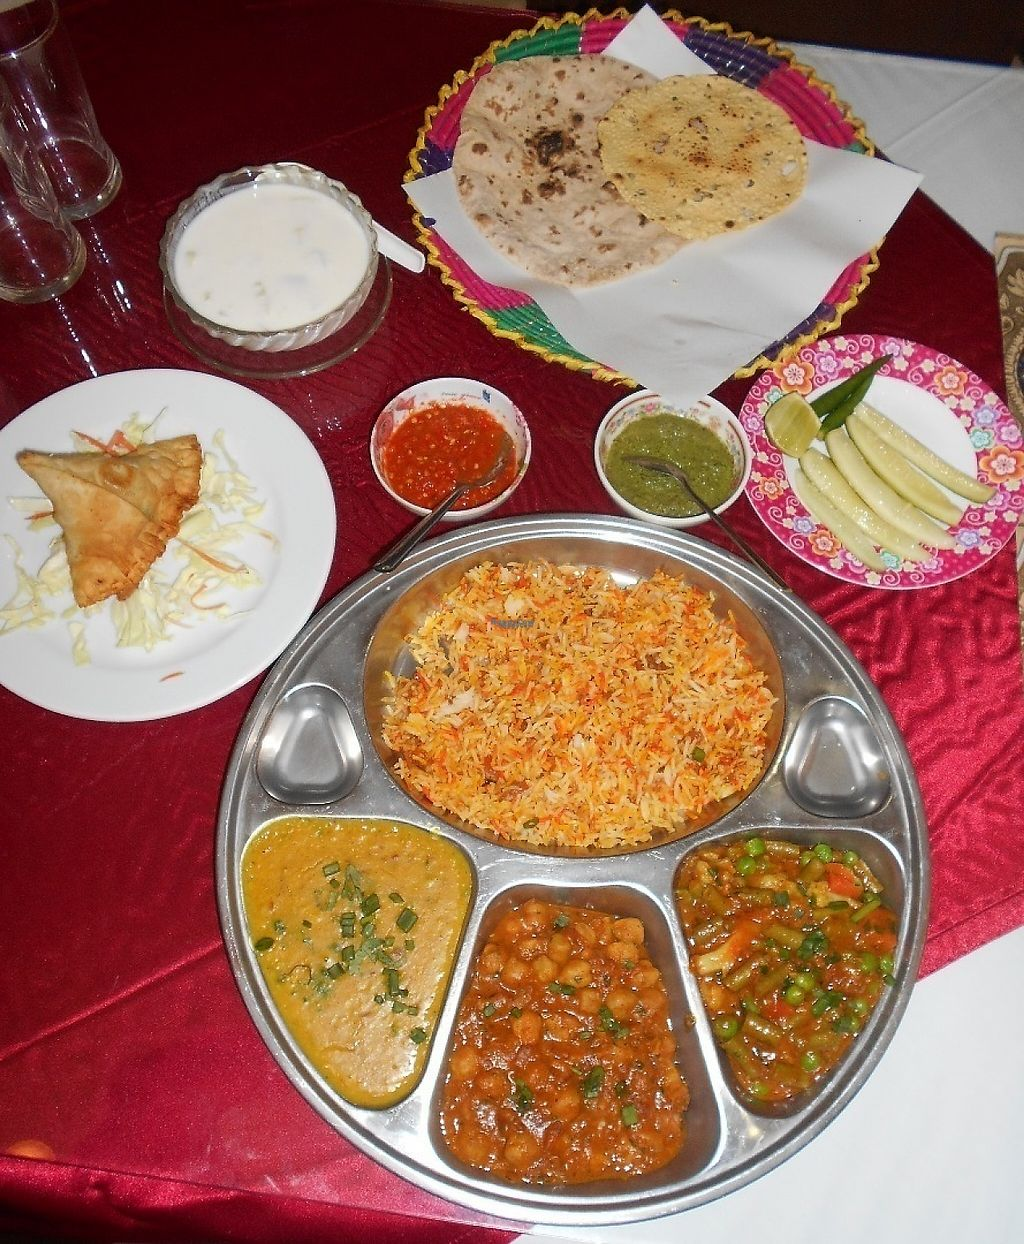 """Photo of Dubai Indian and Arabic Restaurant  by <a href=""""/members/profile/Kelly%20Kelly"""">Kelly Kelly</a> <br/>Al-Diwan 11 - huge and delicious thali! <br/> January 23, 2017  - <a href='/contact/abuse/image/80733/215474'>Report</a>"""